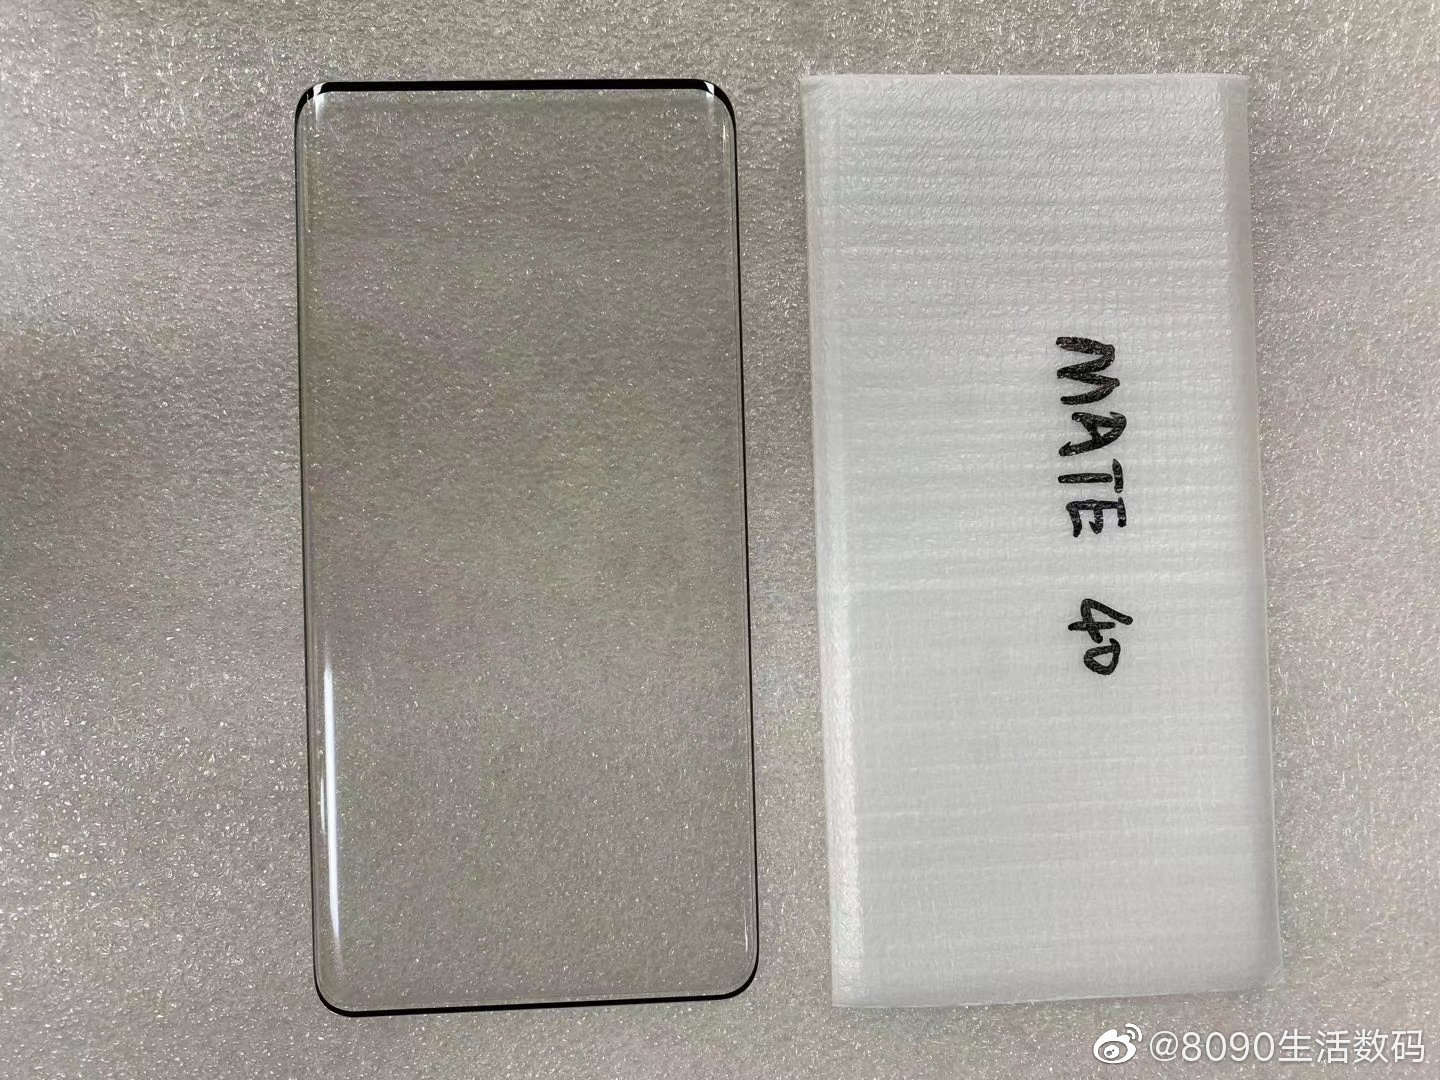 Huawei Mate 40 leak reveals its display has curved edges